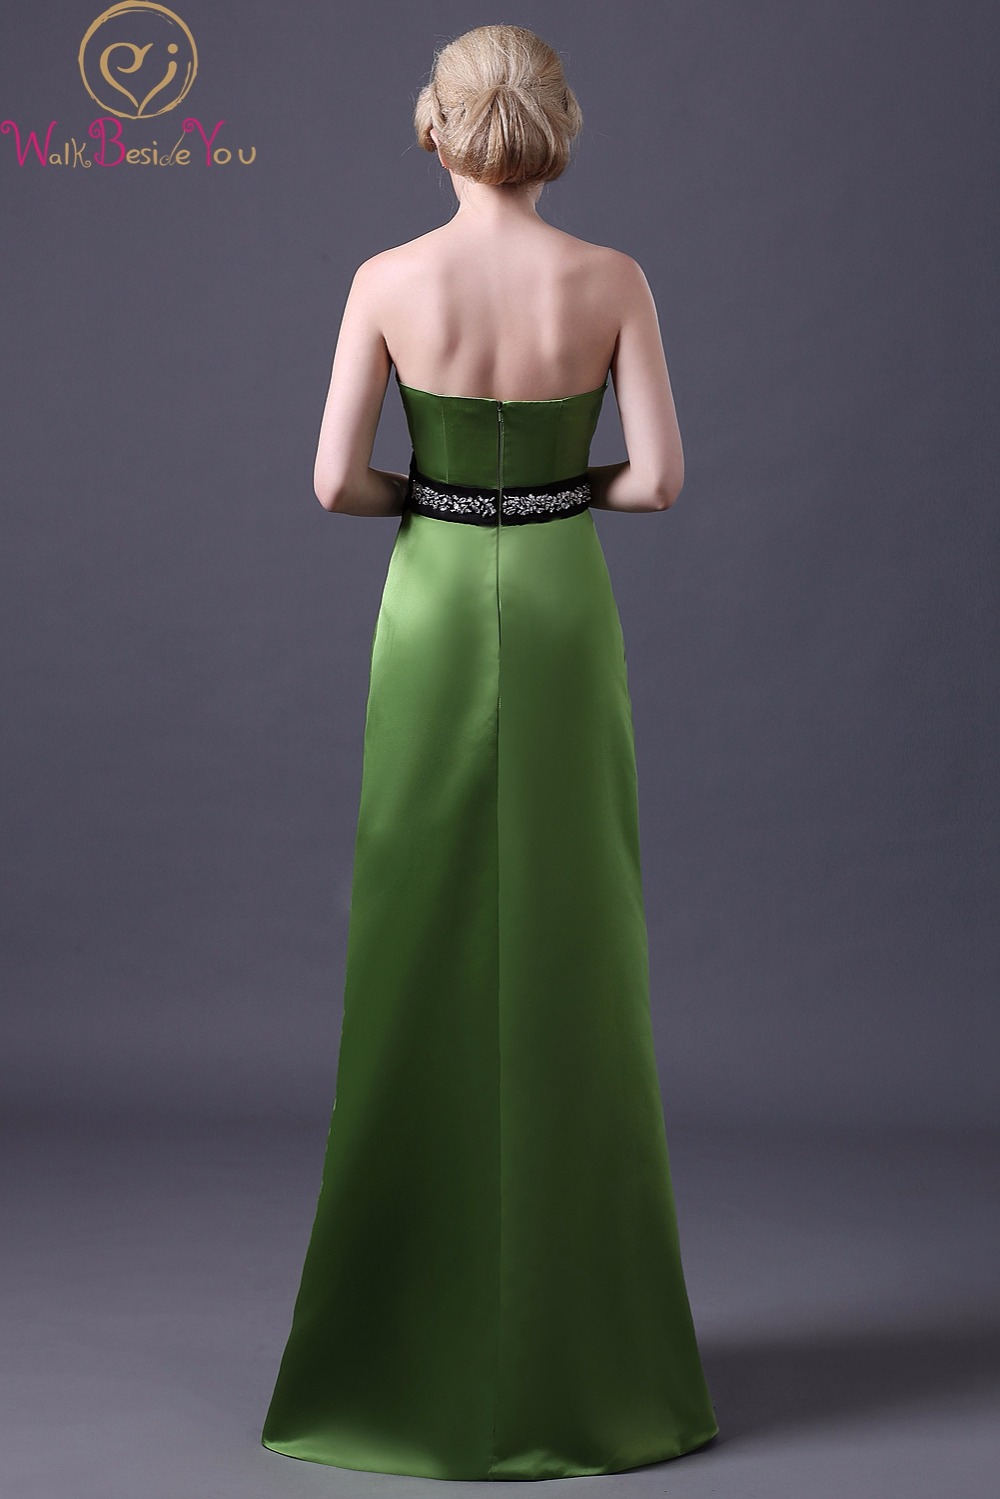 Walk Beside You Real Picture Green Bridesmaid Dresses with Black ...